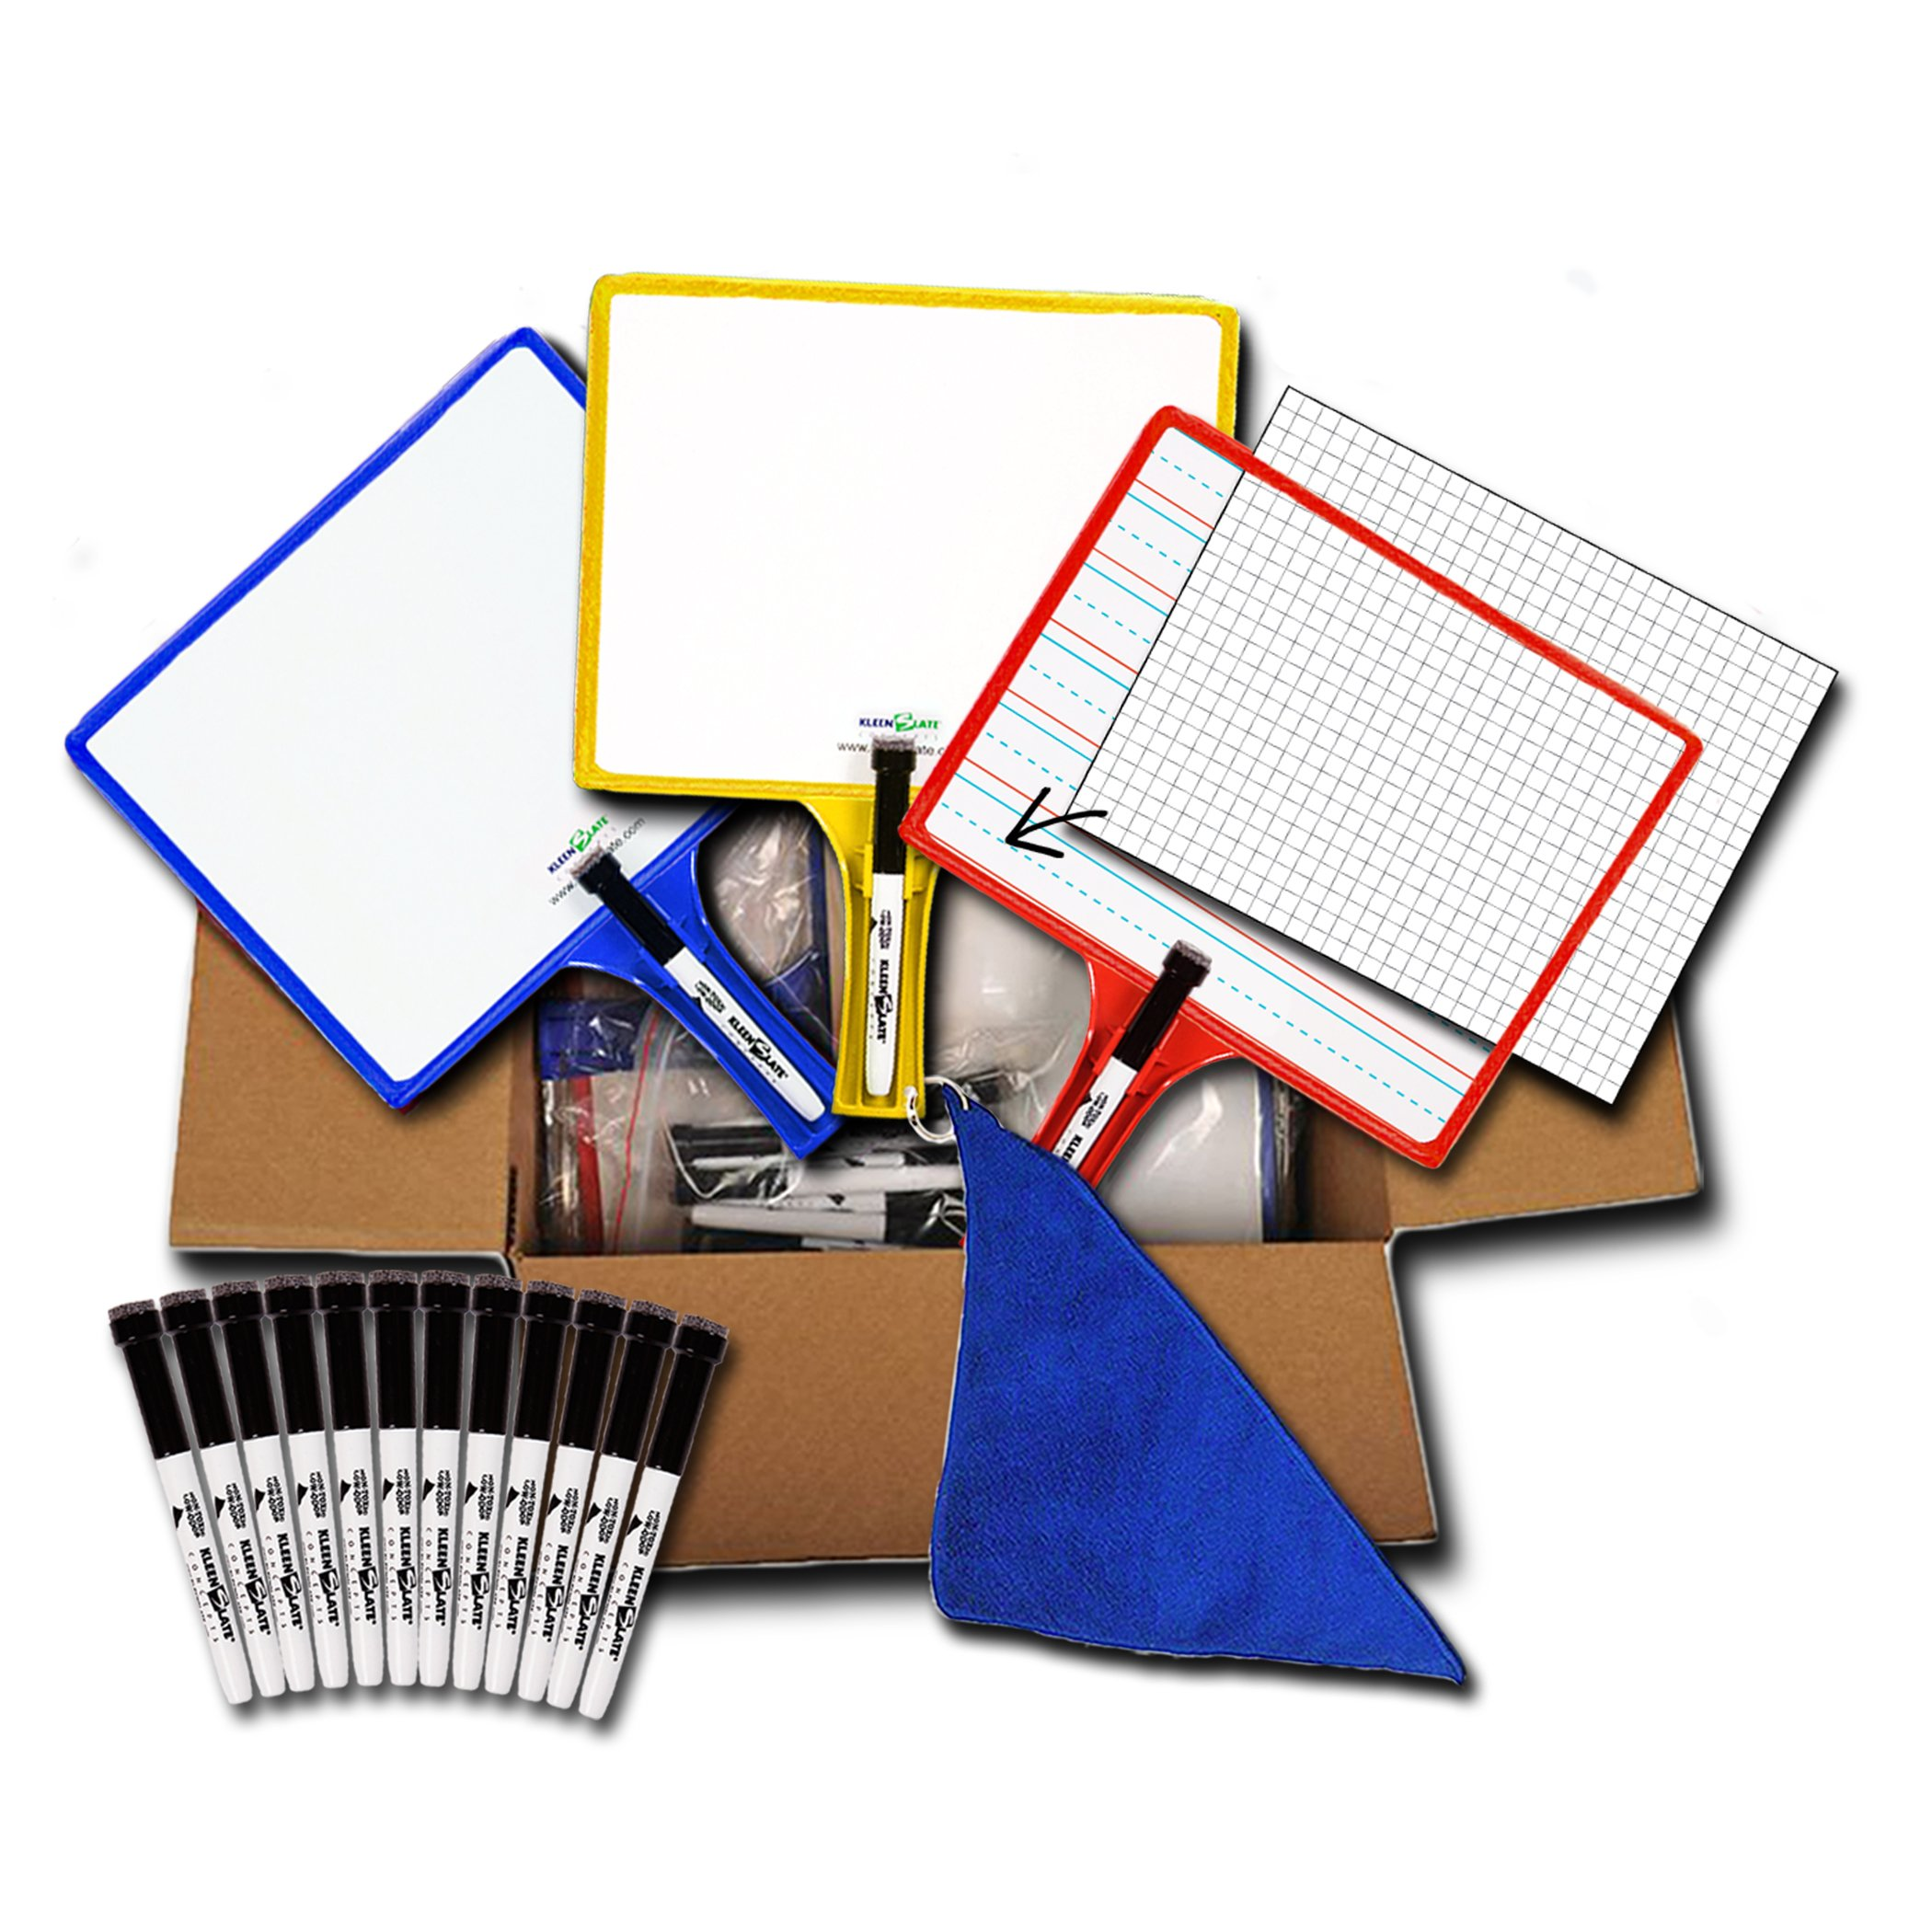 Set of 12 Customizable whiteboards w/Dry Erase Sleeve & Interchangeable Graphic Organizers + Bonus by KleenSlate